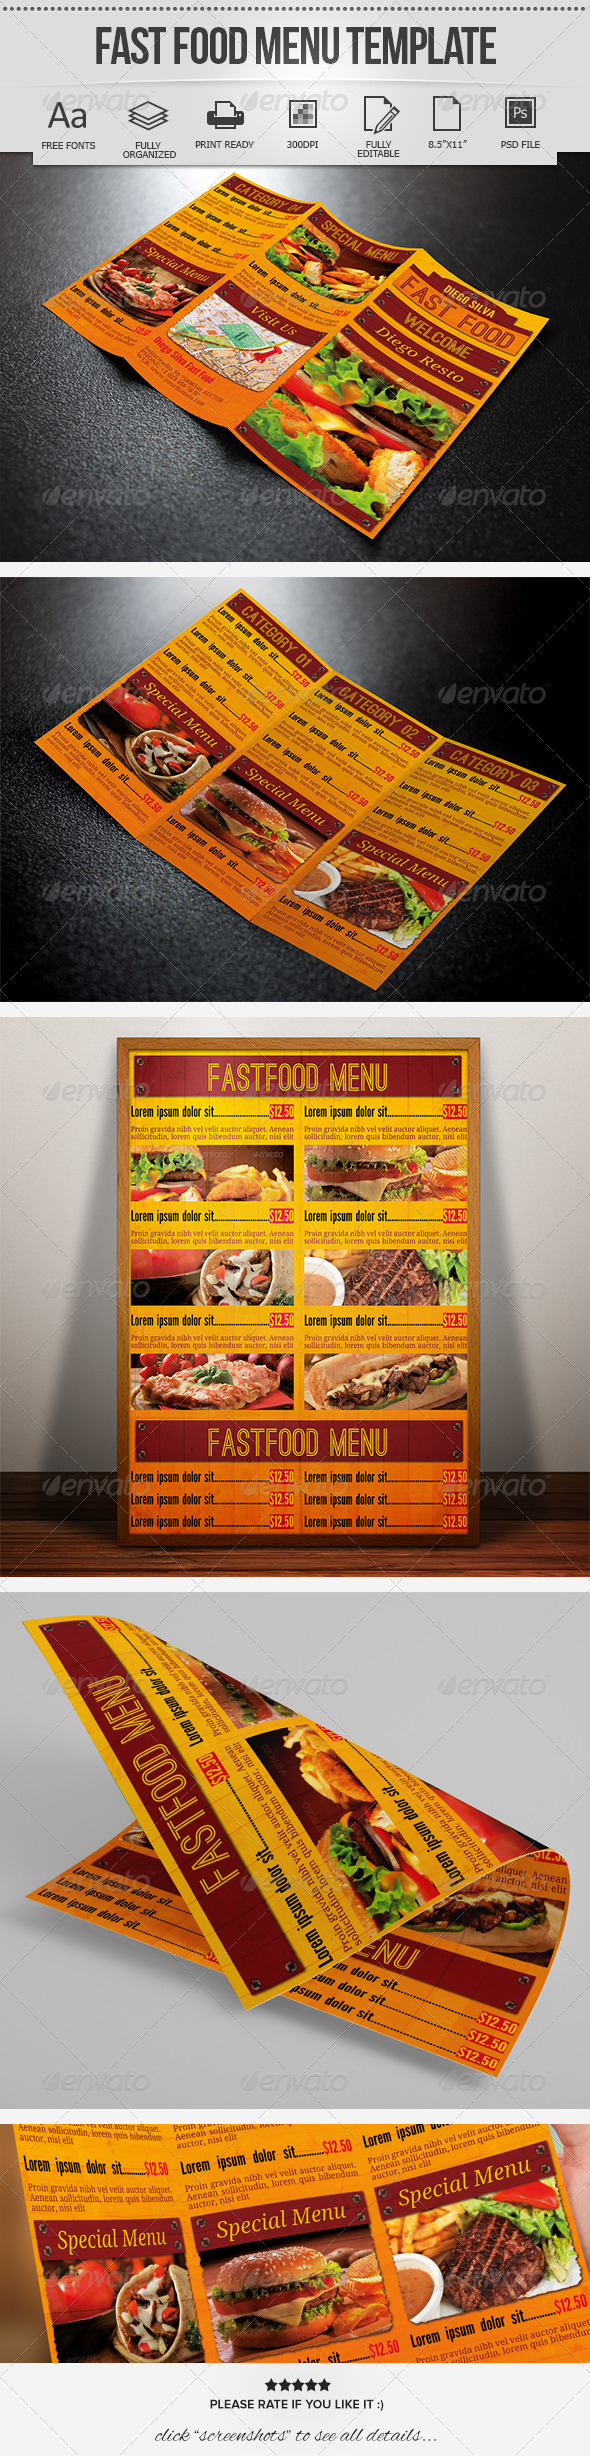 Fast Food Menu Template - Food Menus Print Templates